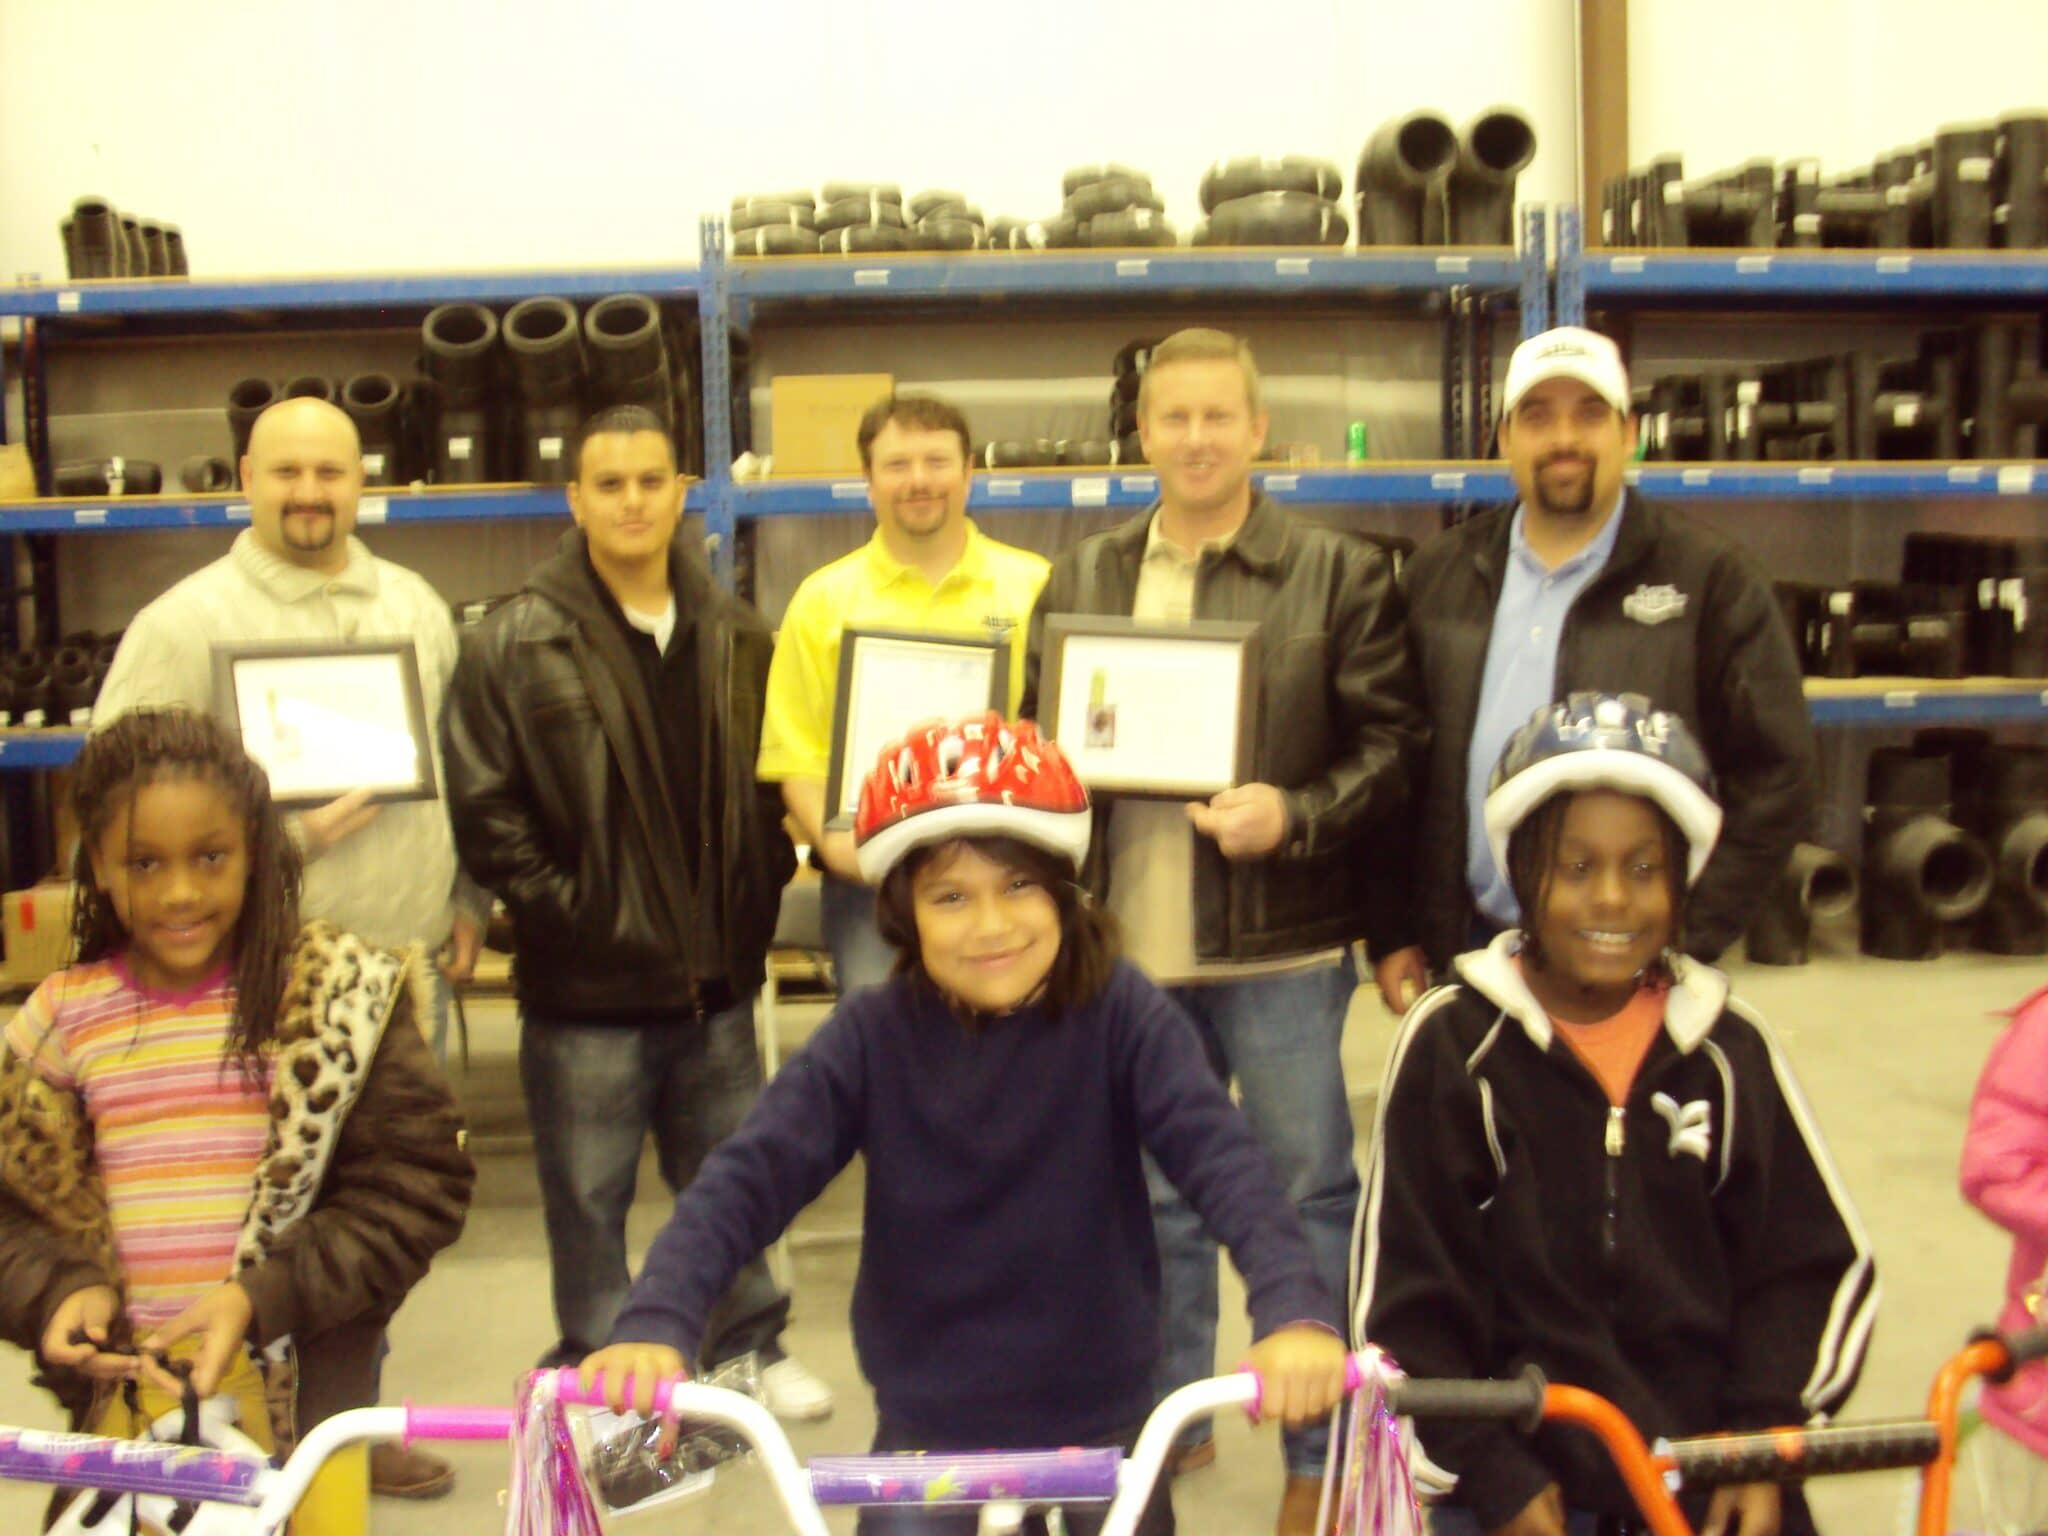 Milford Pipe Supply Shows Christmas Spirit by Donating Bikes